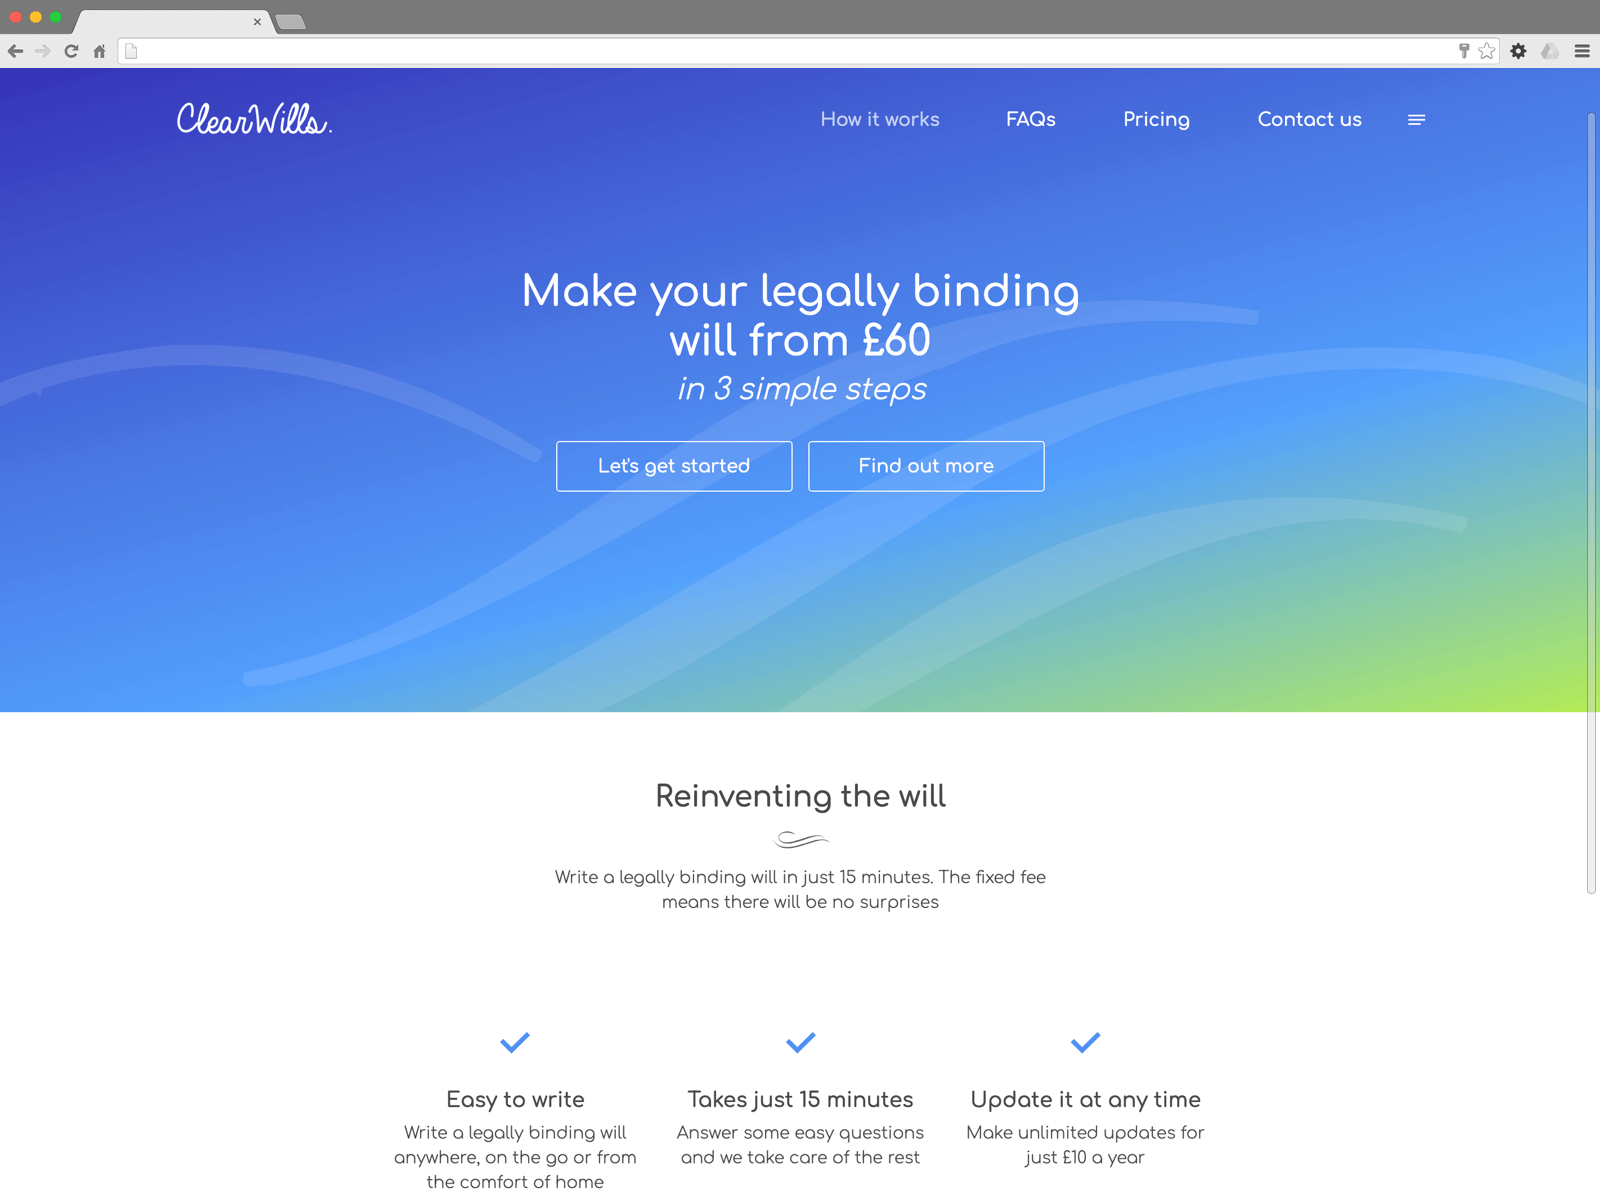 ClearWills website (Website on desktop)